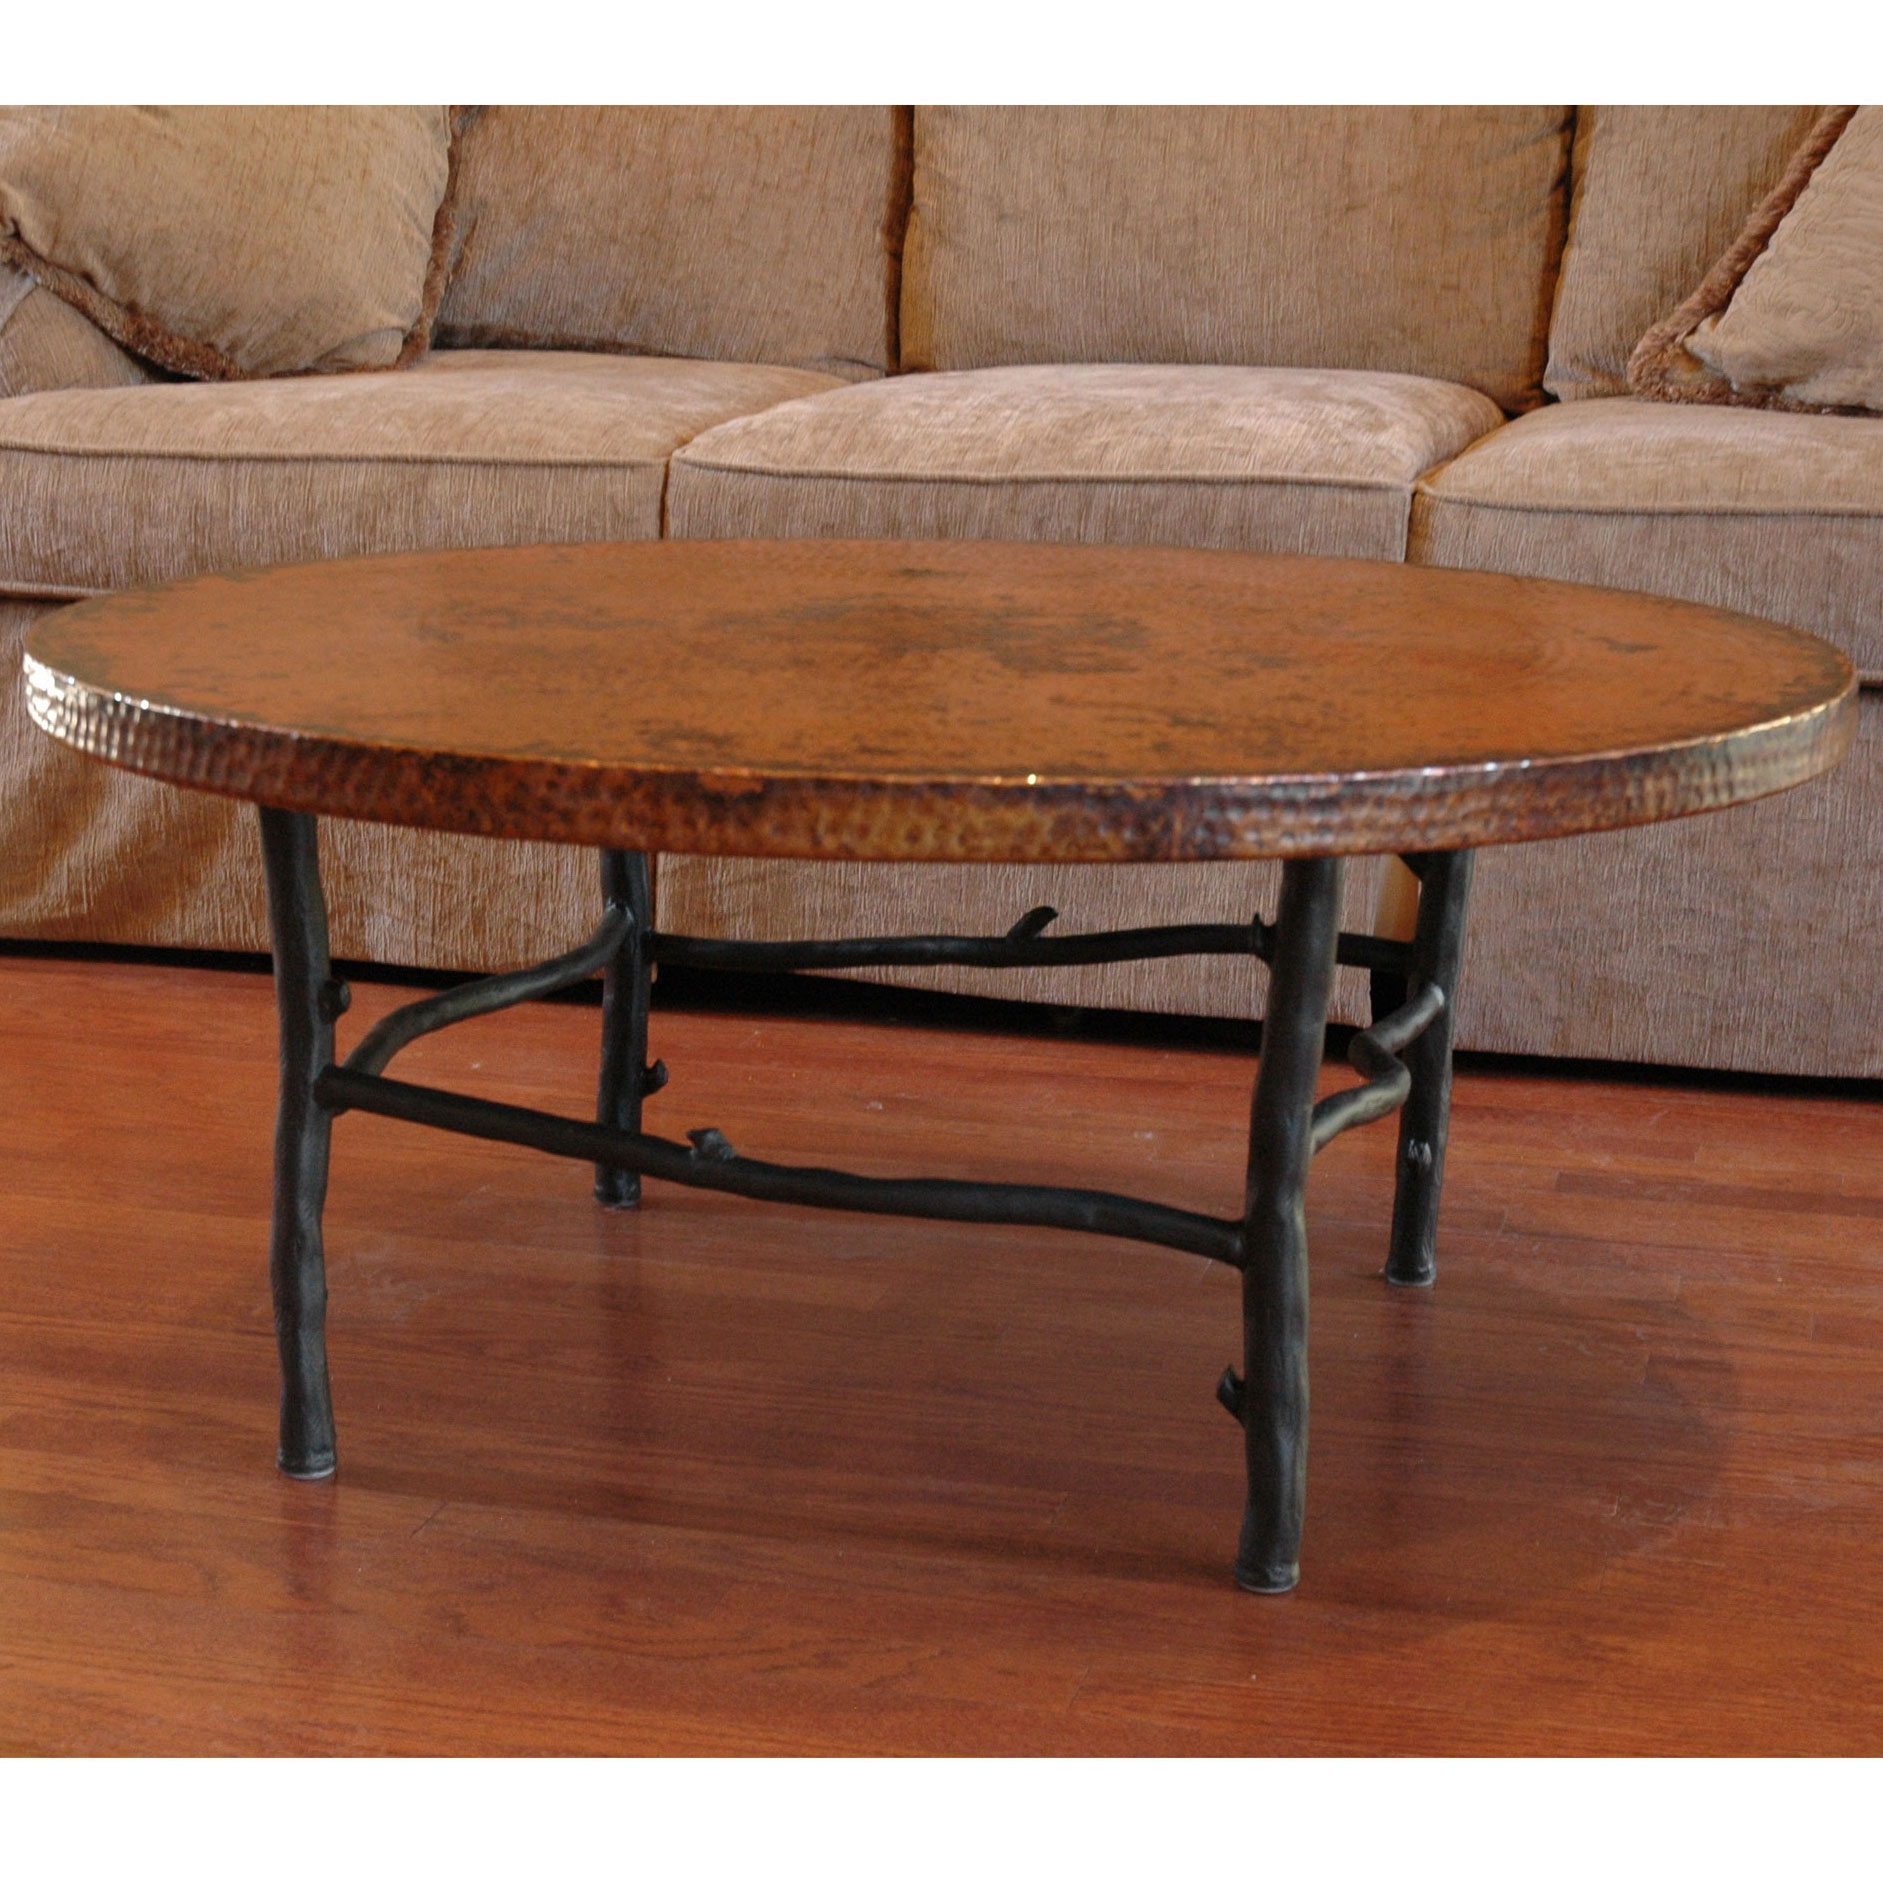 Black Coffee Table Sheffield: Small South Fork Coffee Table Iron Base Only